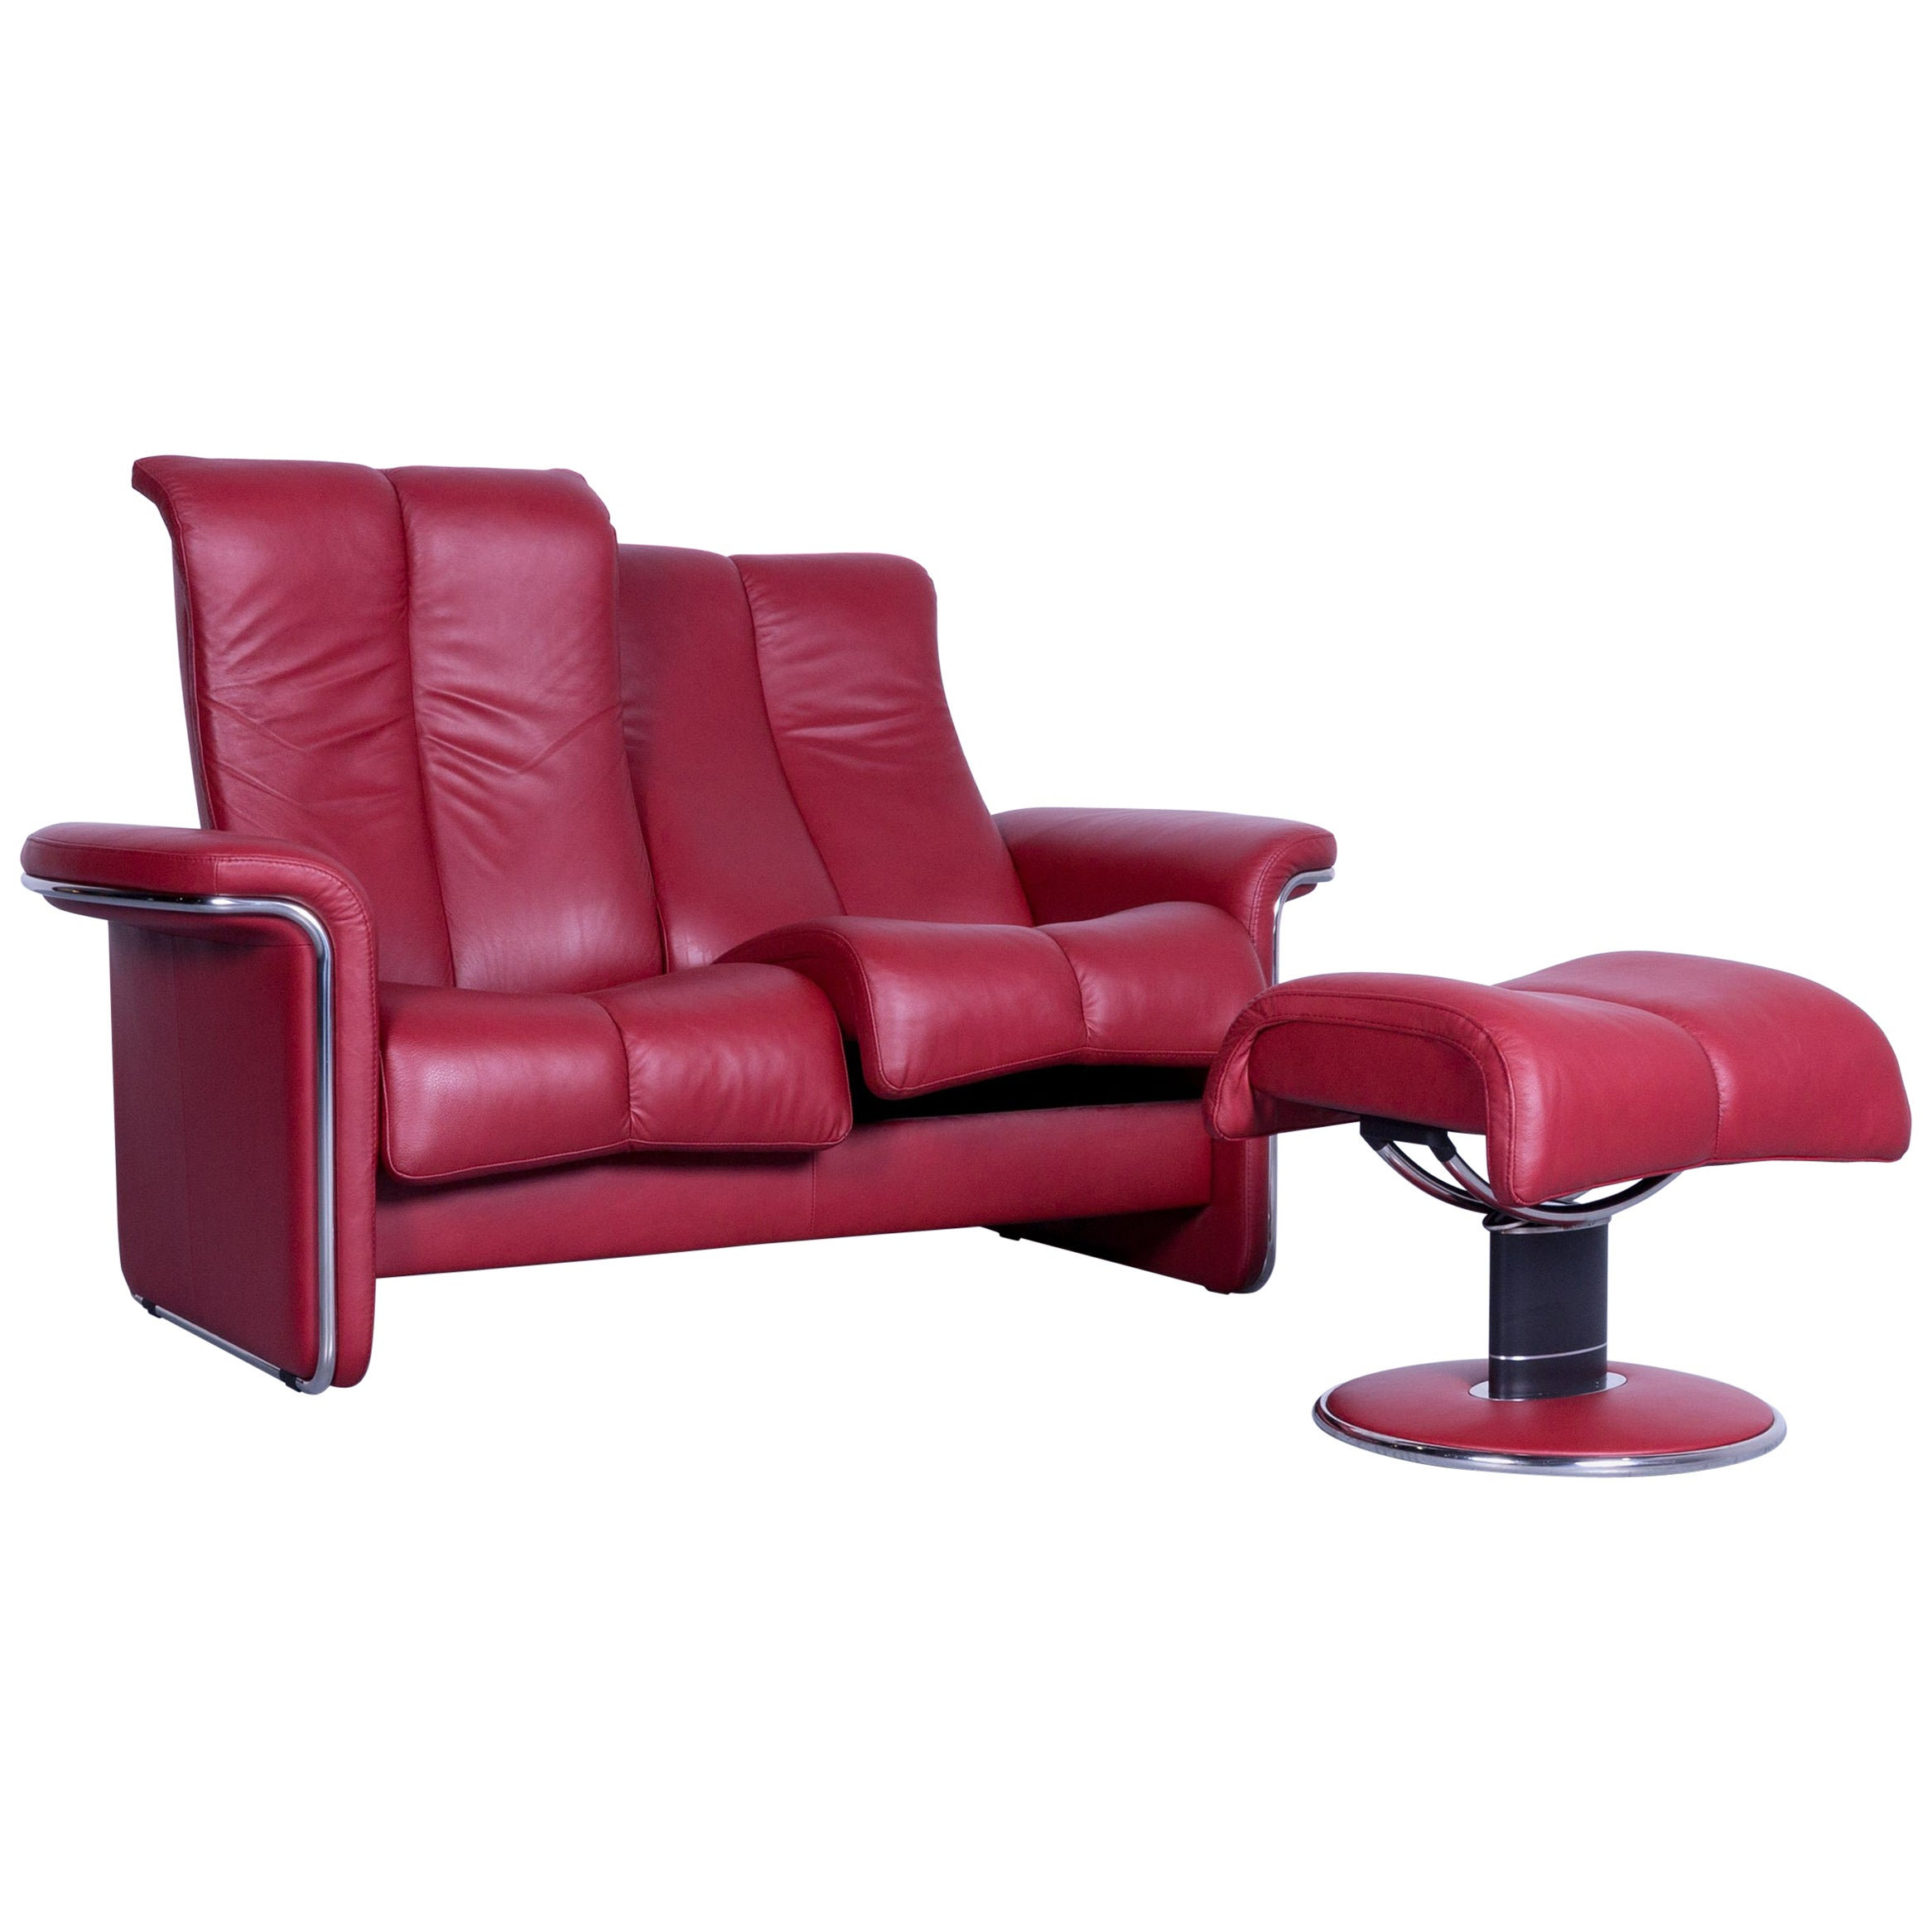 Ekornes Sofa Ekornes Stressless Soul Sofa Red Leather Two Seat And Footstool